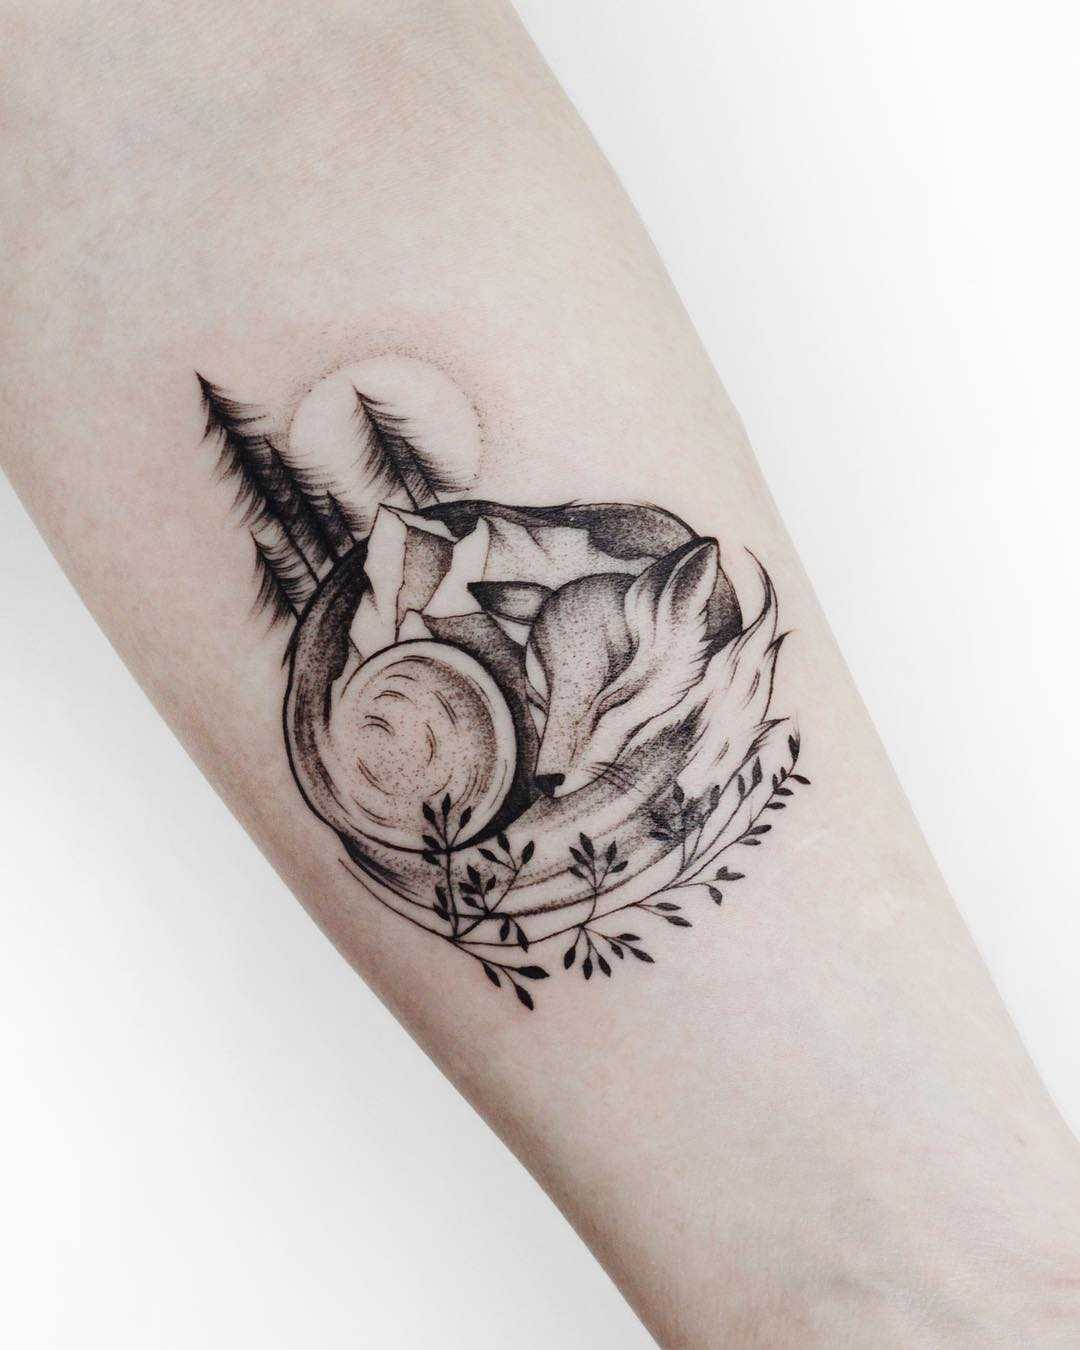 Fox and landscape tattoo by Sasha Tattooing